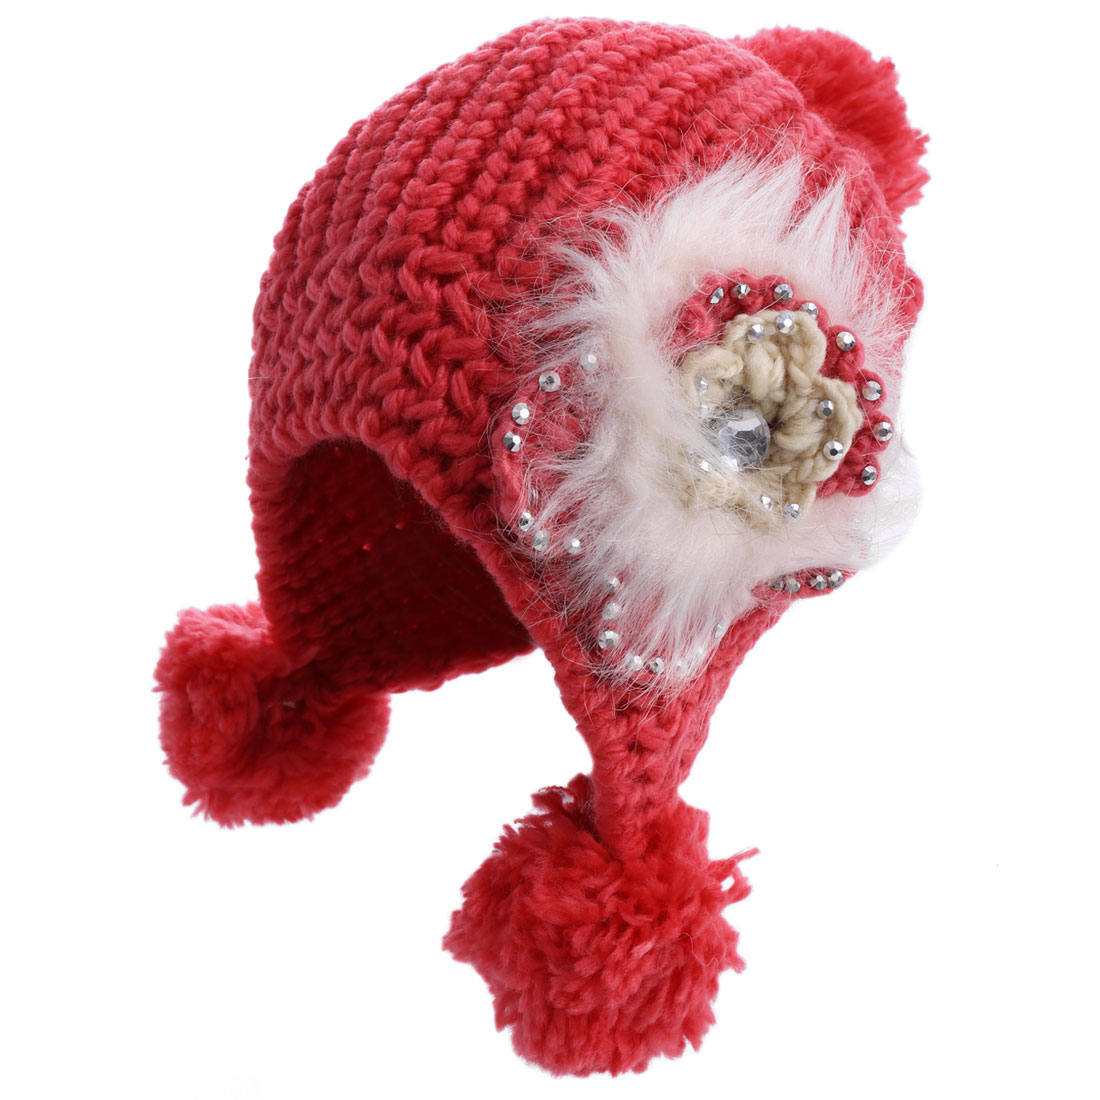 Lady Pom-pom Flower Pattern Stretchy Red Knitted Beanie Hat